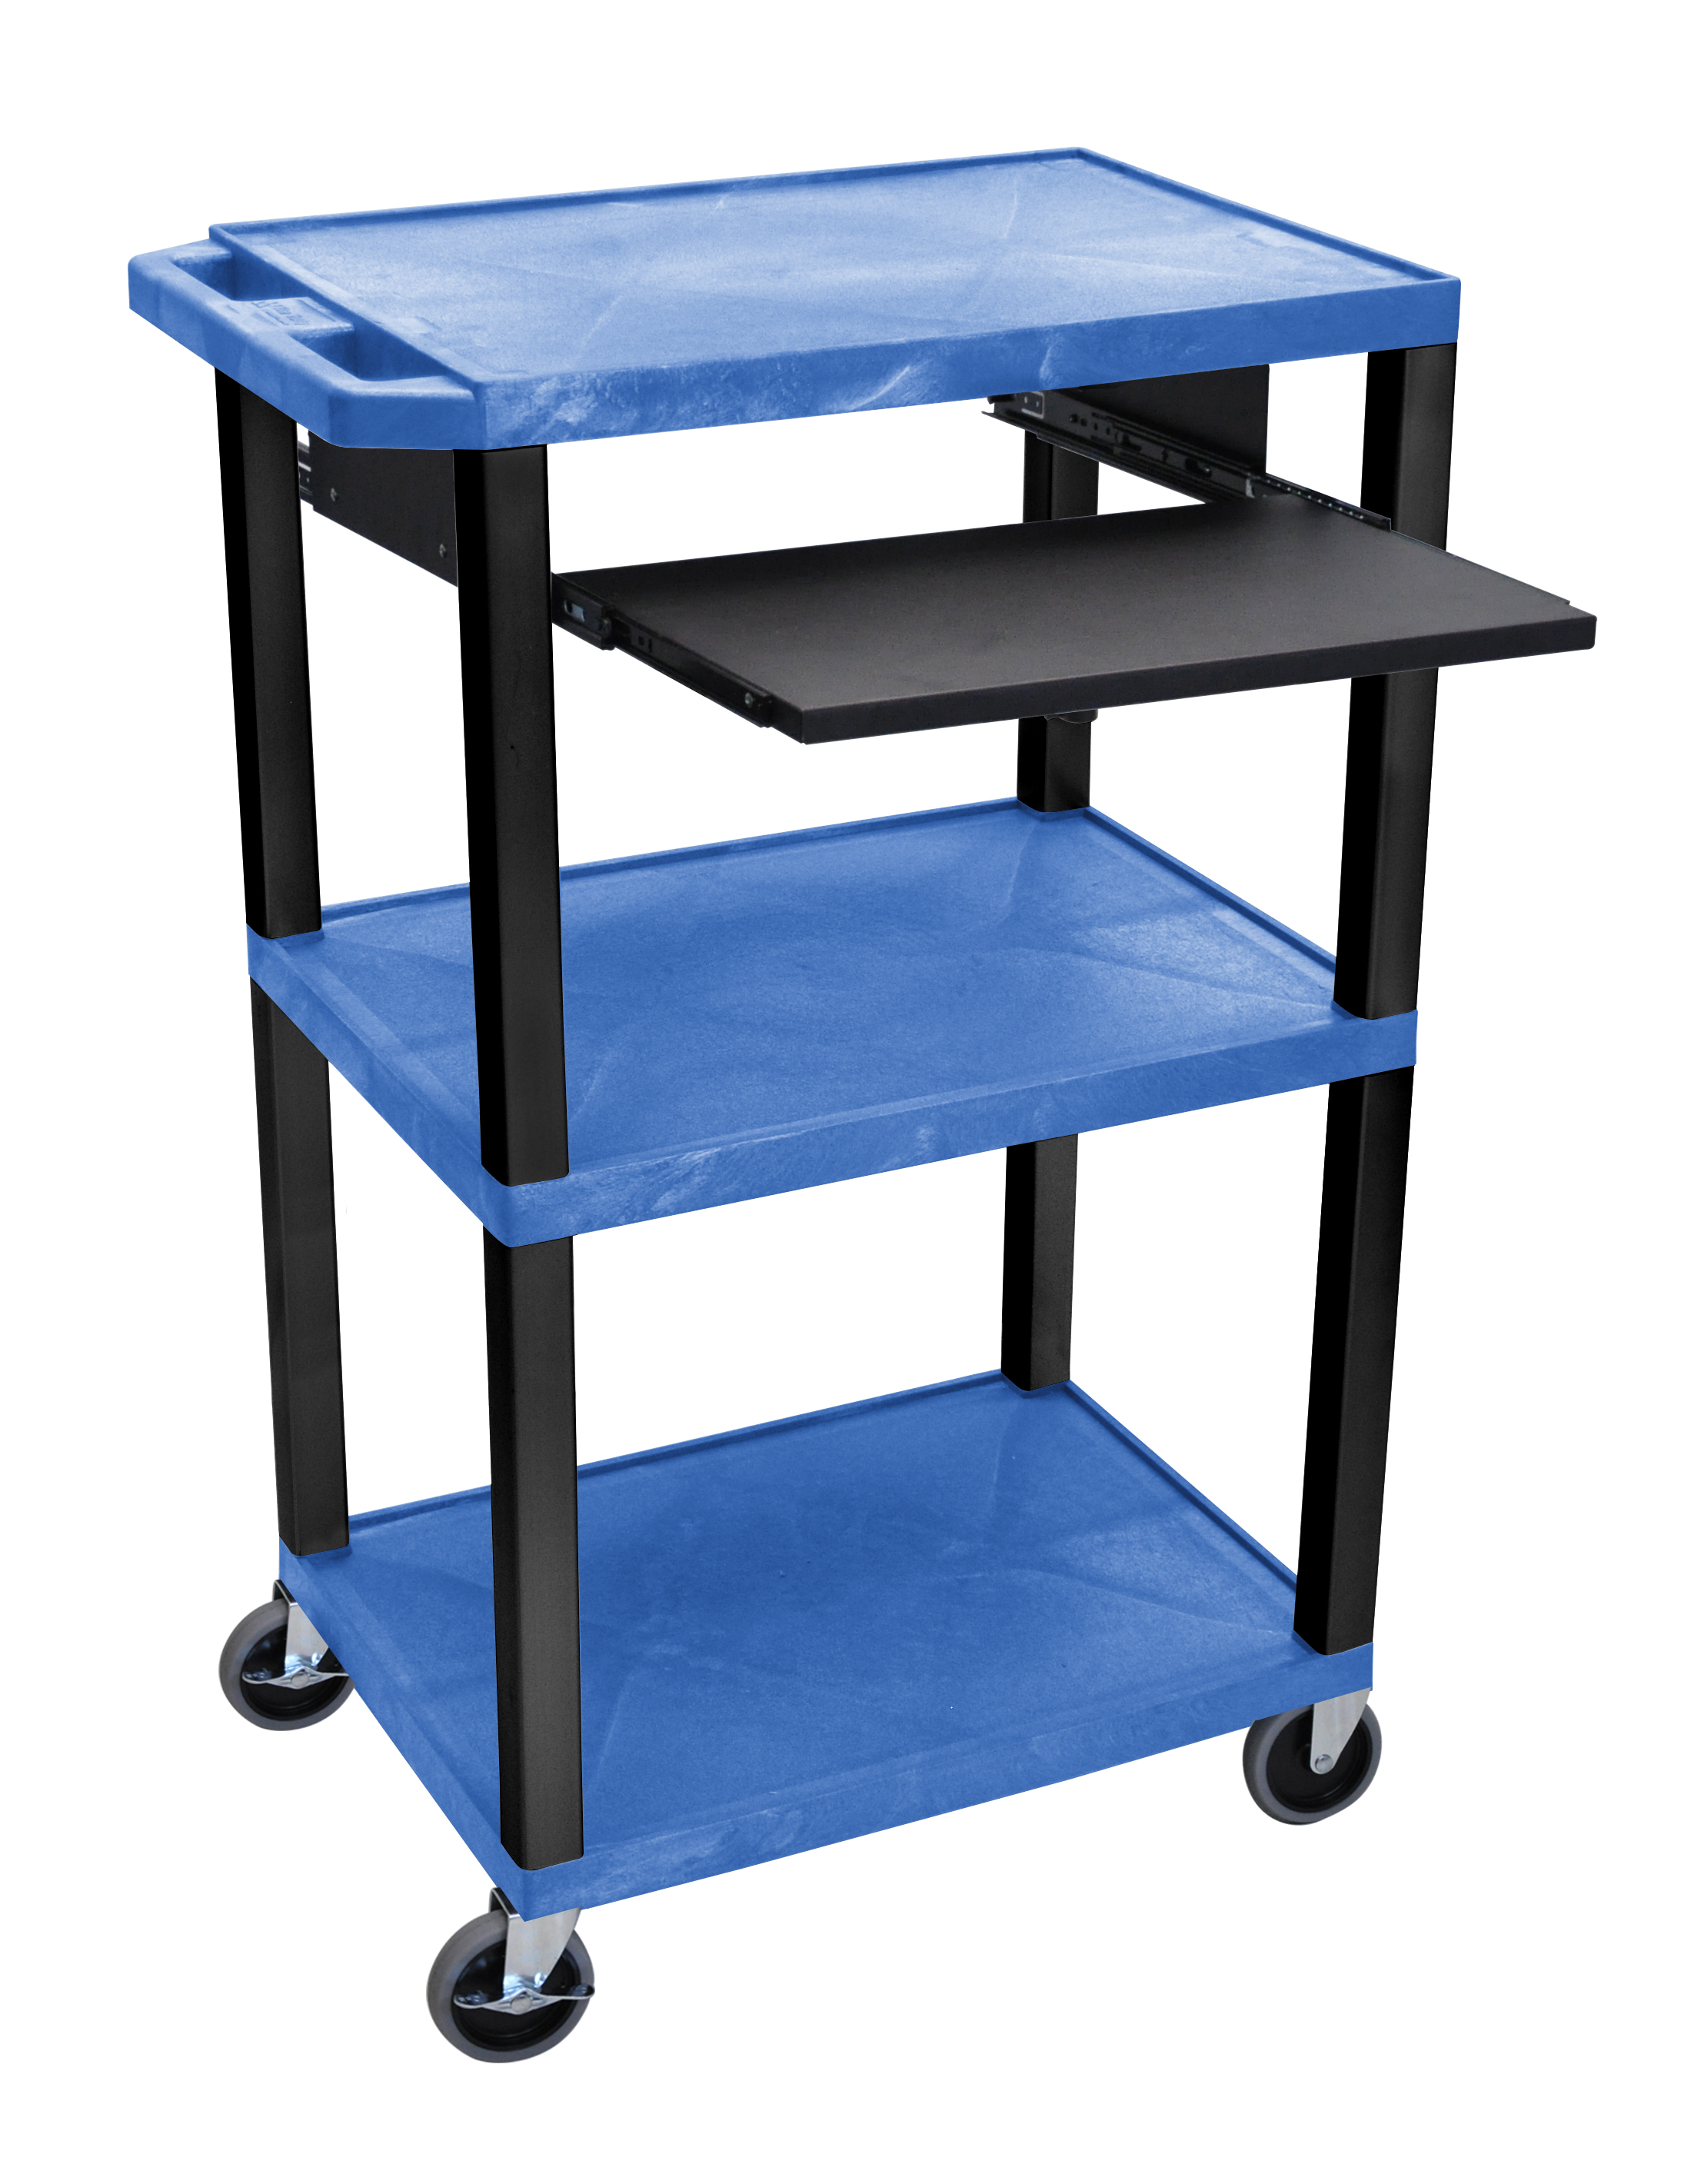 Offex Presentation Cart with Open Shelves and Pull Out Tray Blue and Black